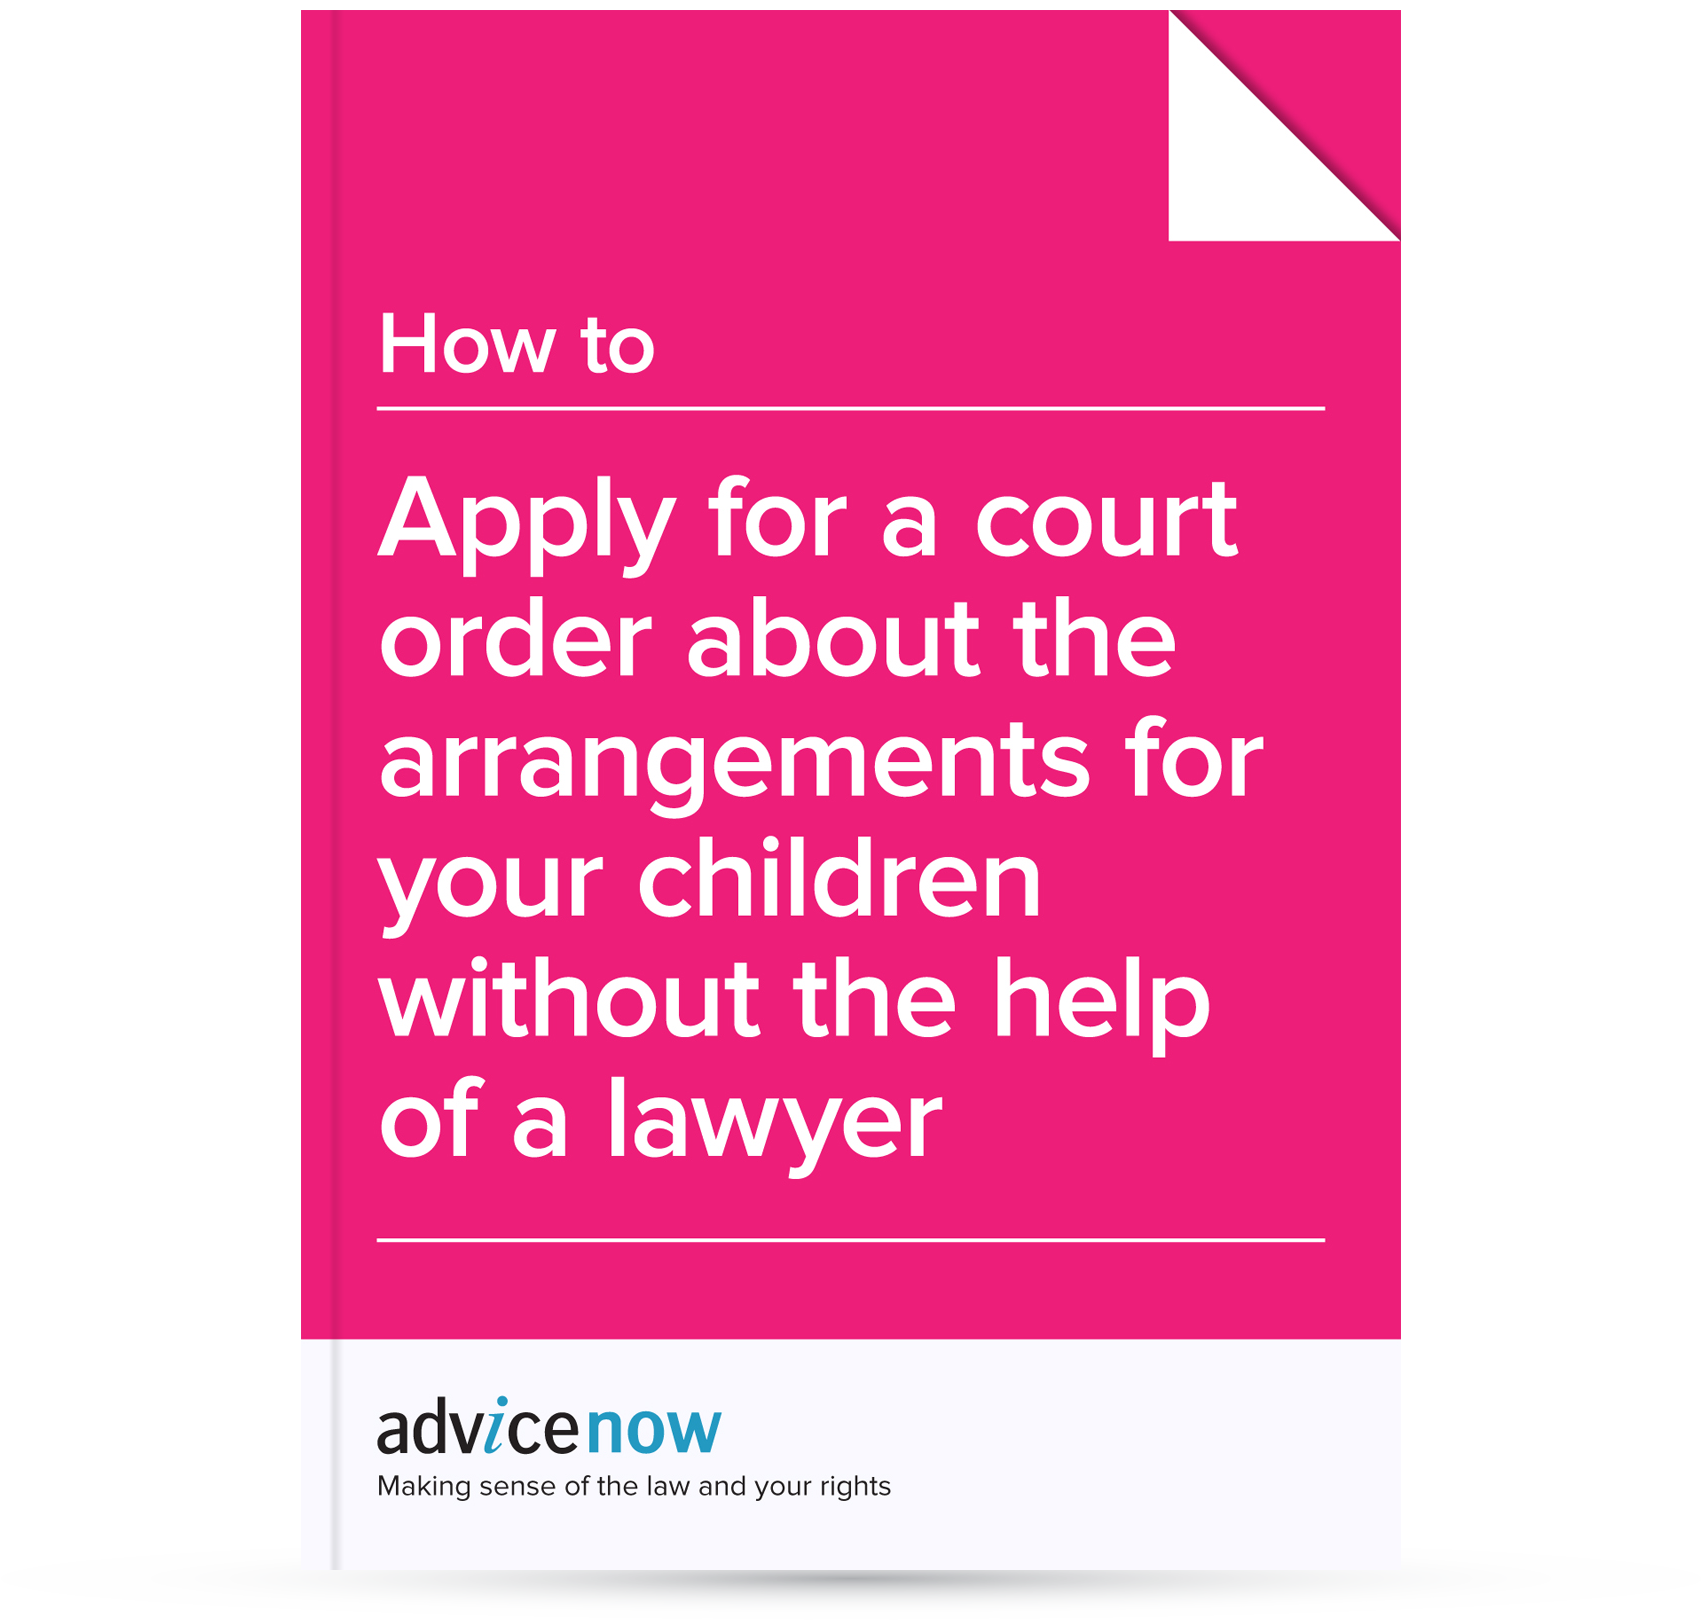 How To Apply For A Court Order About The Arrangements For Your